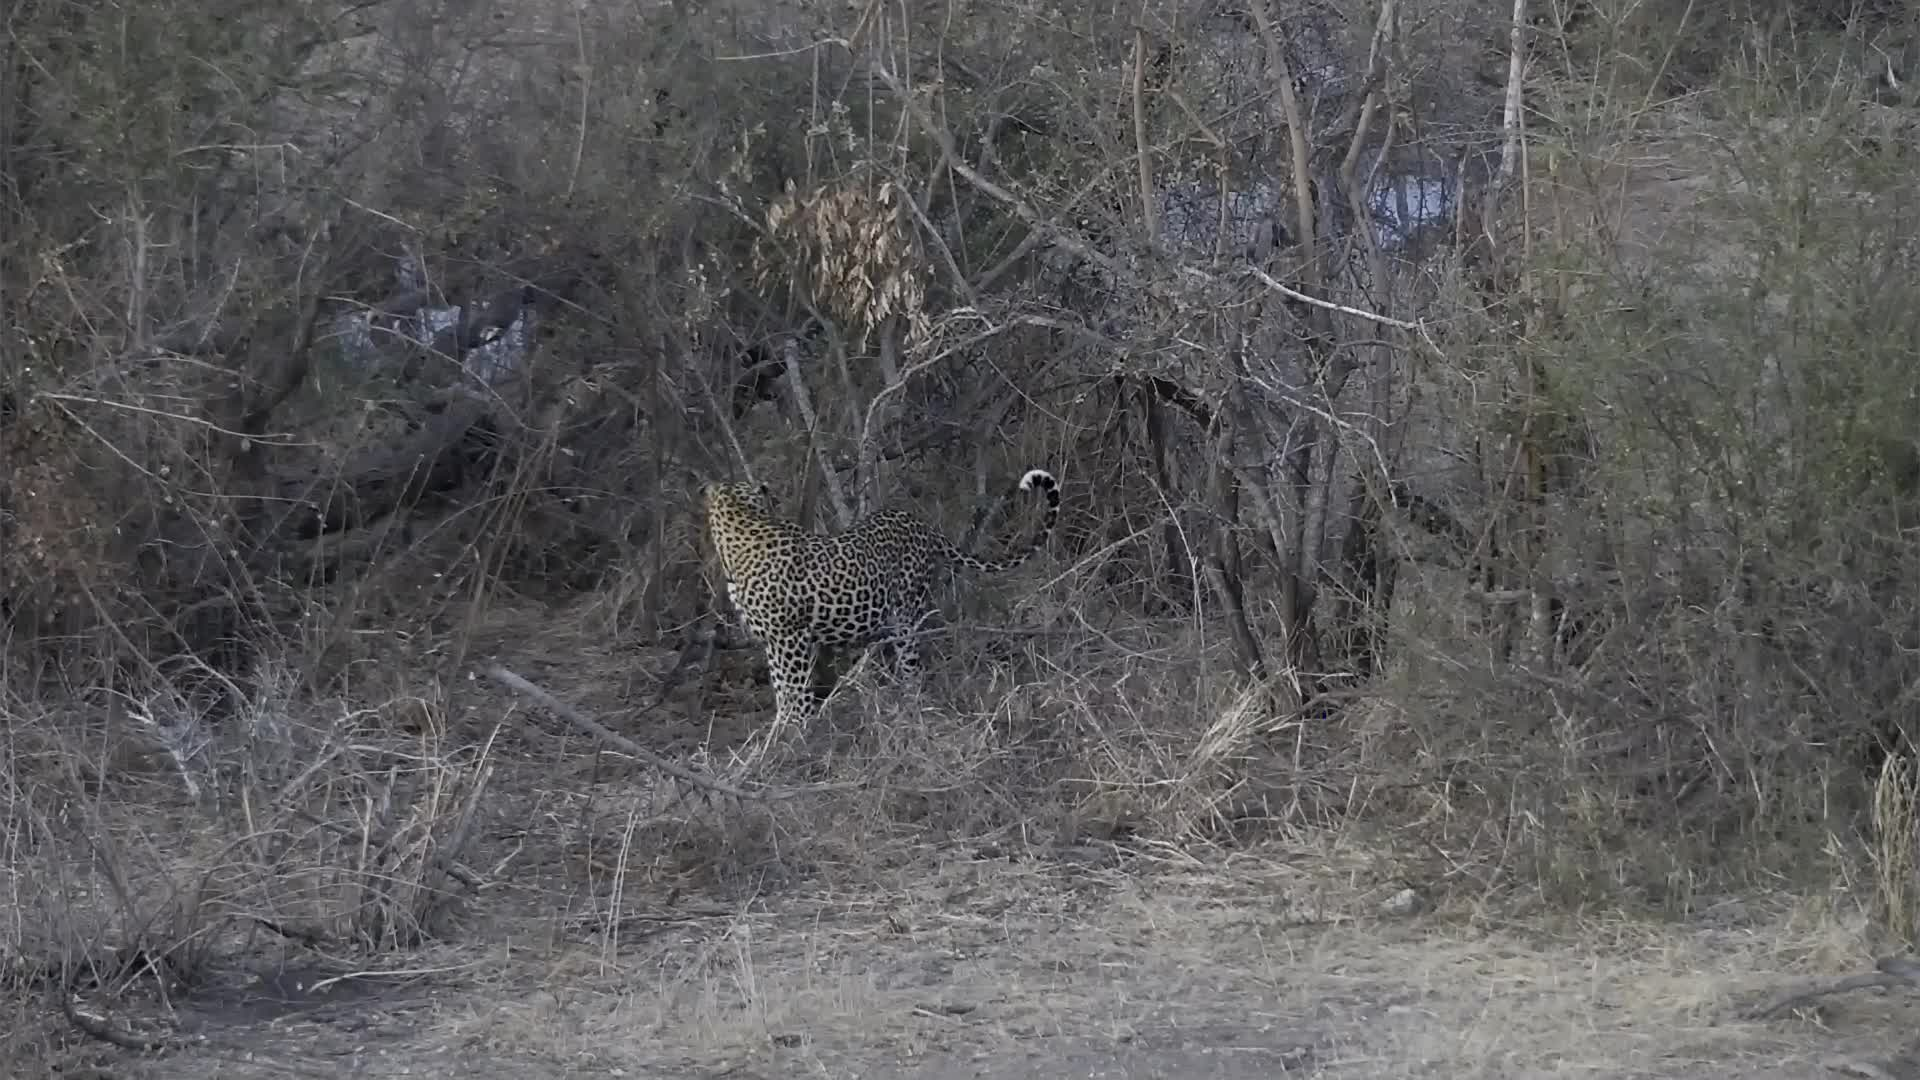 VIDEO: Male and female Leopards Part 2